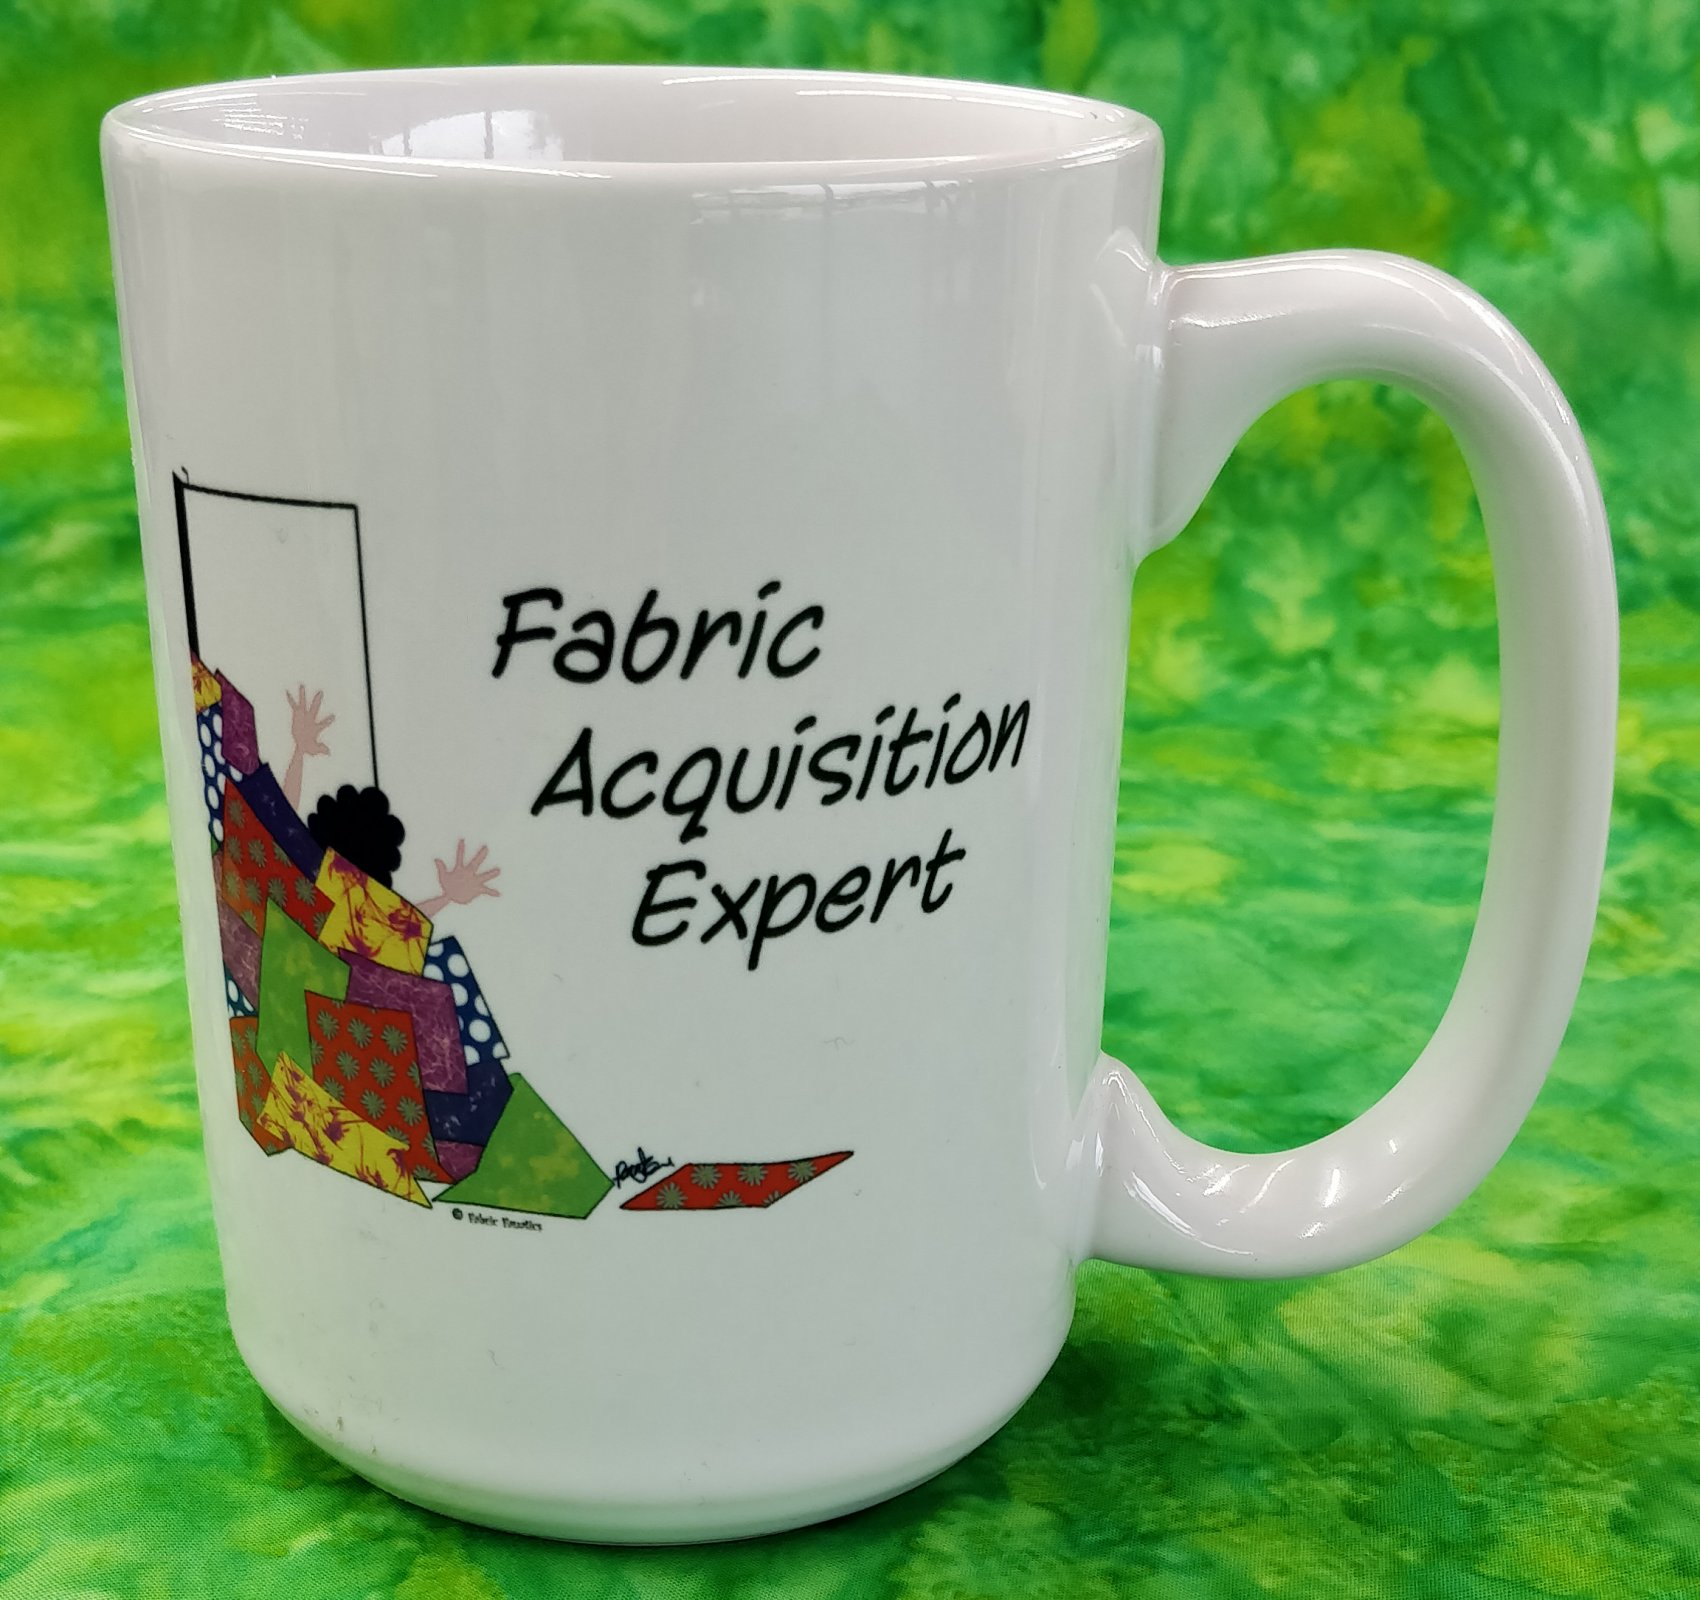 Mug - Fabric Aquisition Expert - #1 - in store or curbside